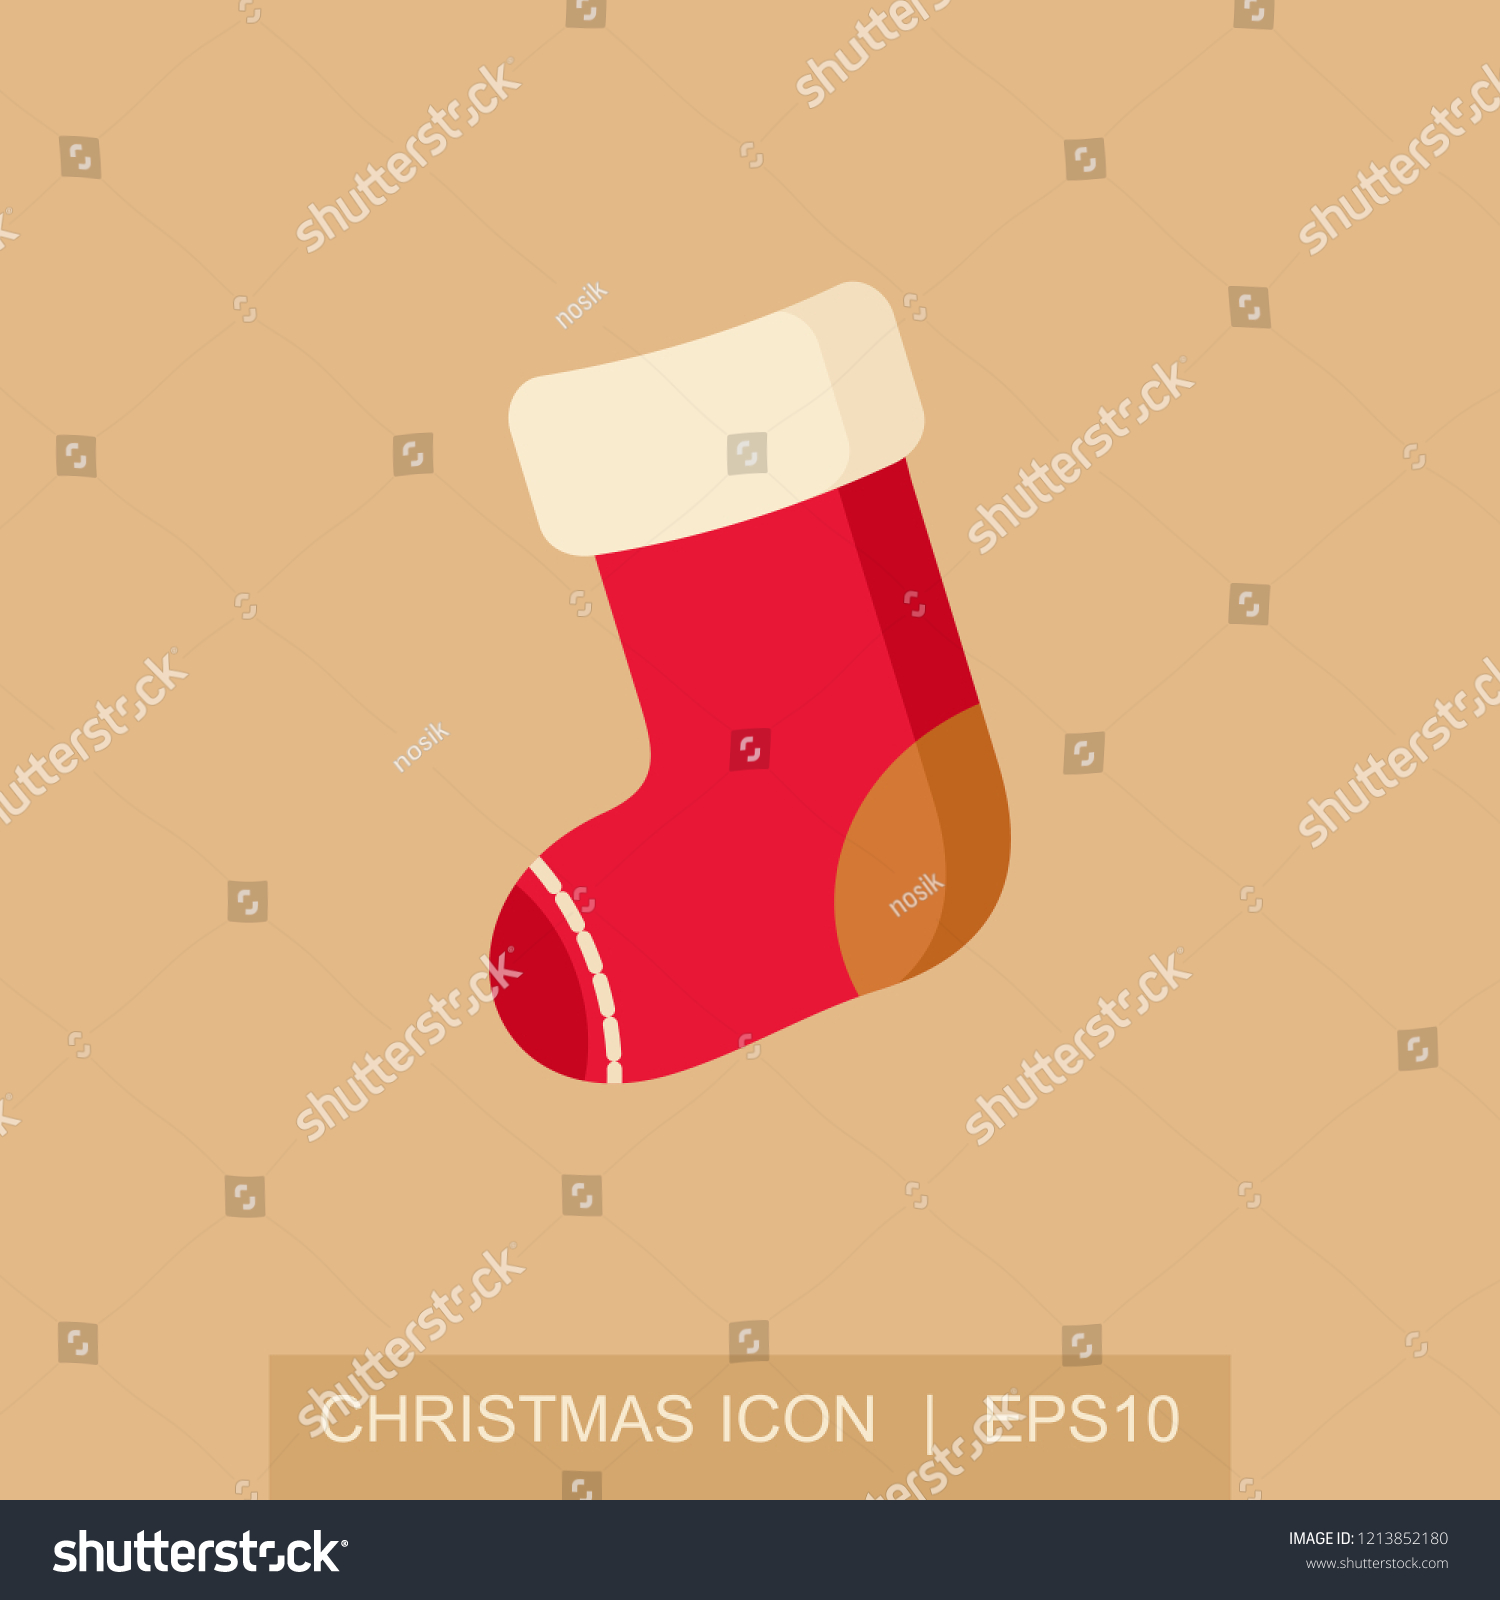 ce7afcccdda4 Christmas socks icon. Merry Christmas and Happy New Year. Christmas card  template. Isolated